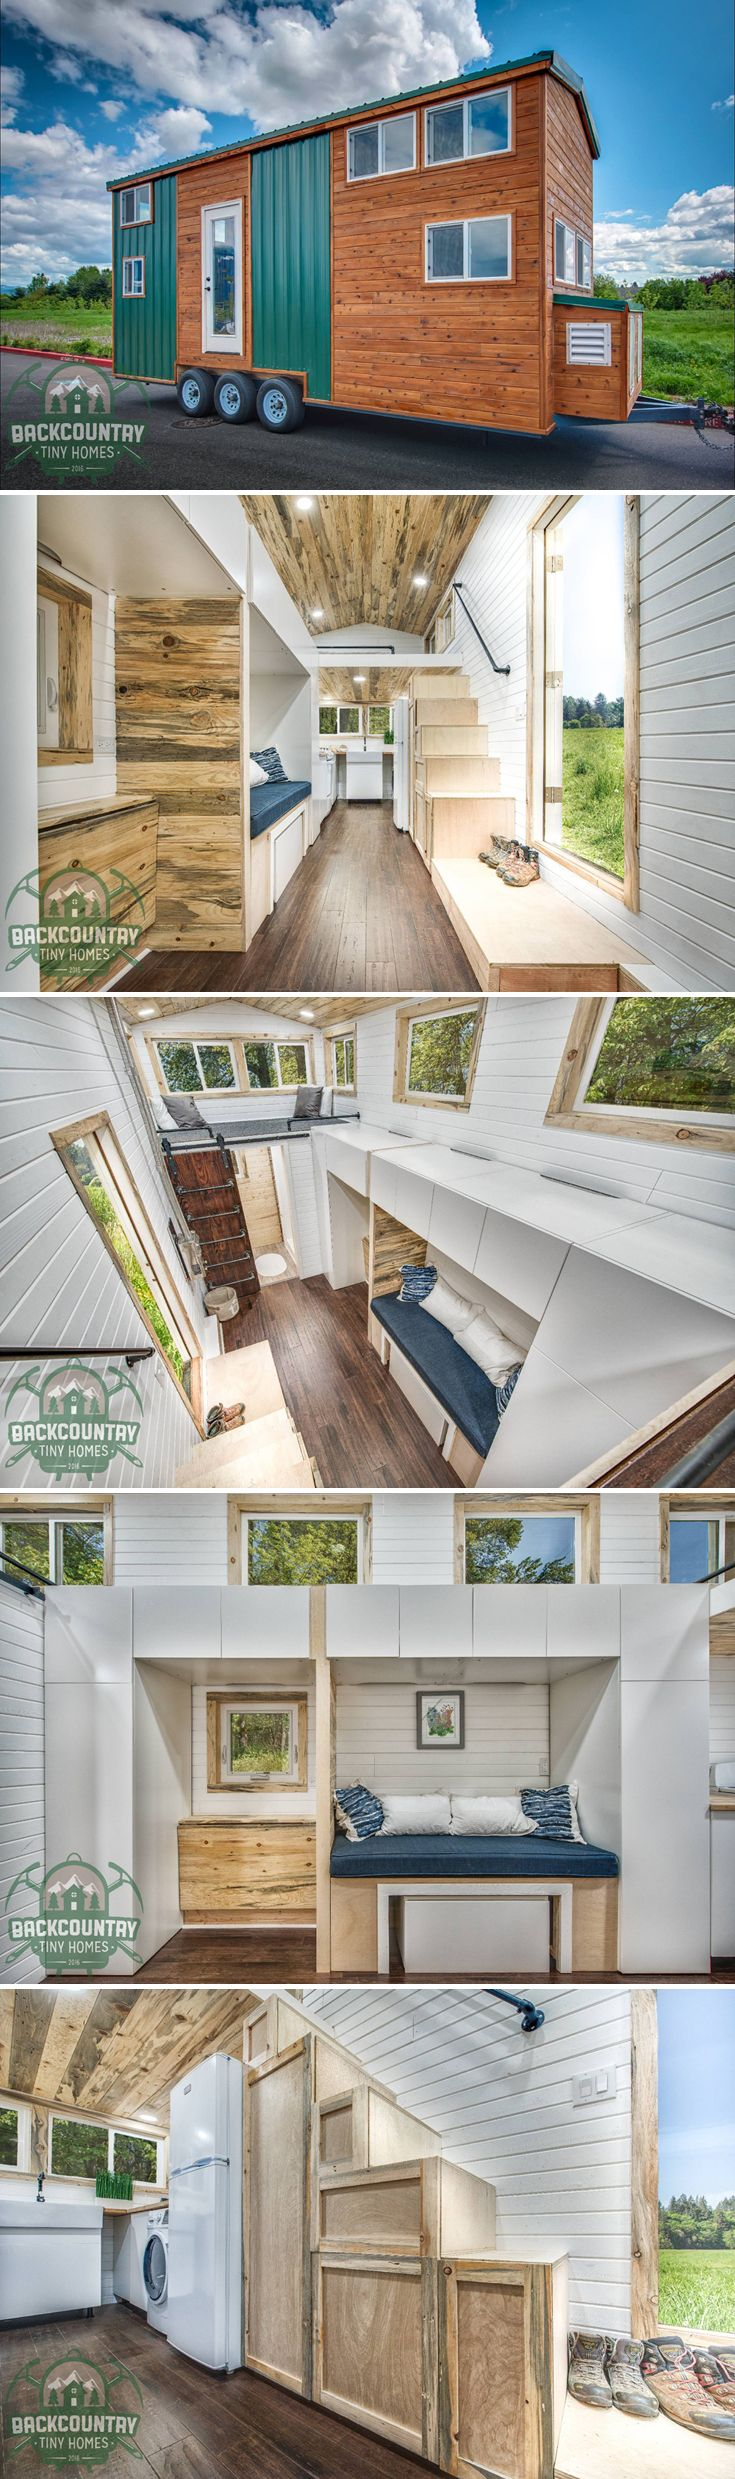 Best 25 Tiny house prices ideas only on Pinterest Tumbleweed